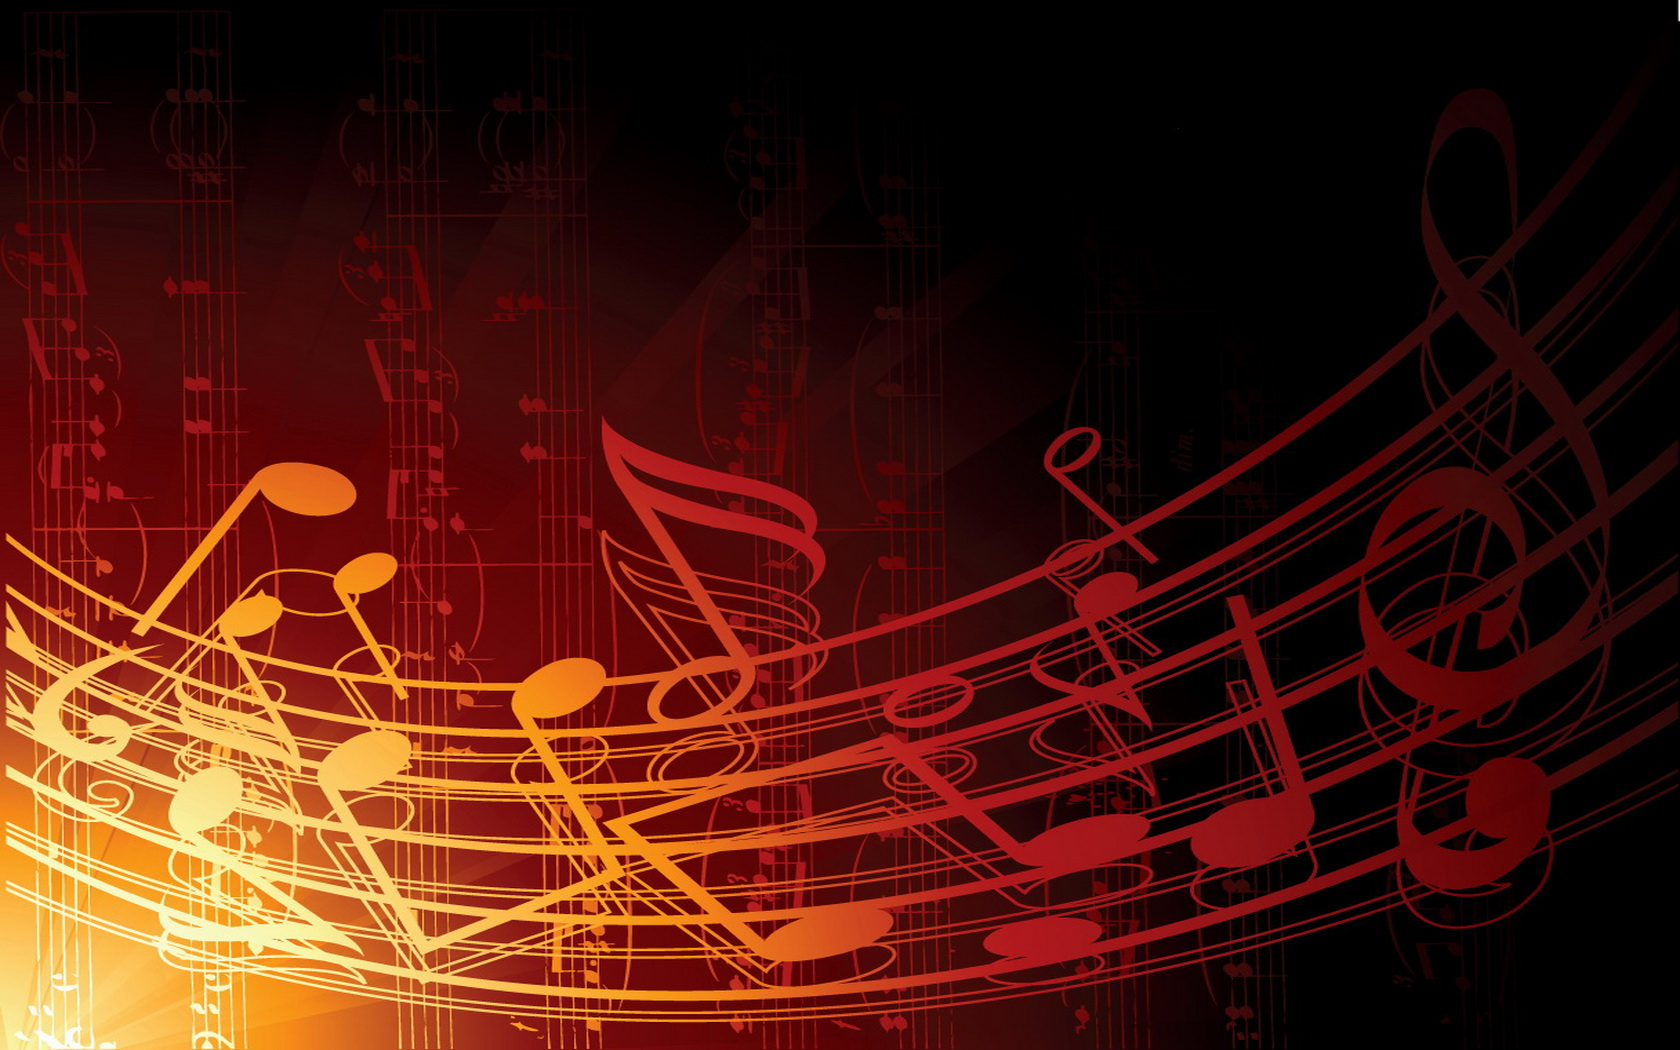 More About Music Poster Background High Resolution Update: Artistic Wallpaper And Background Image